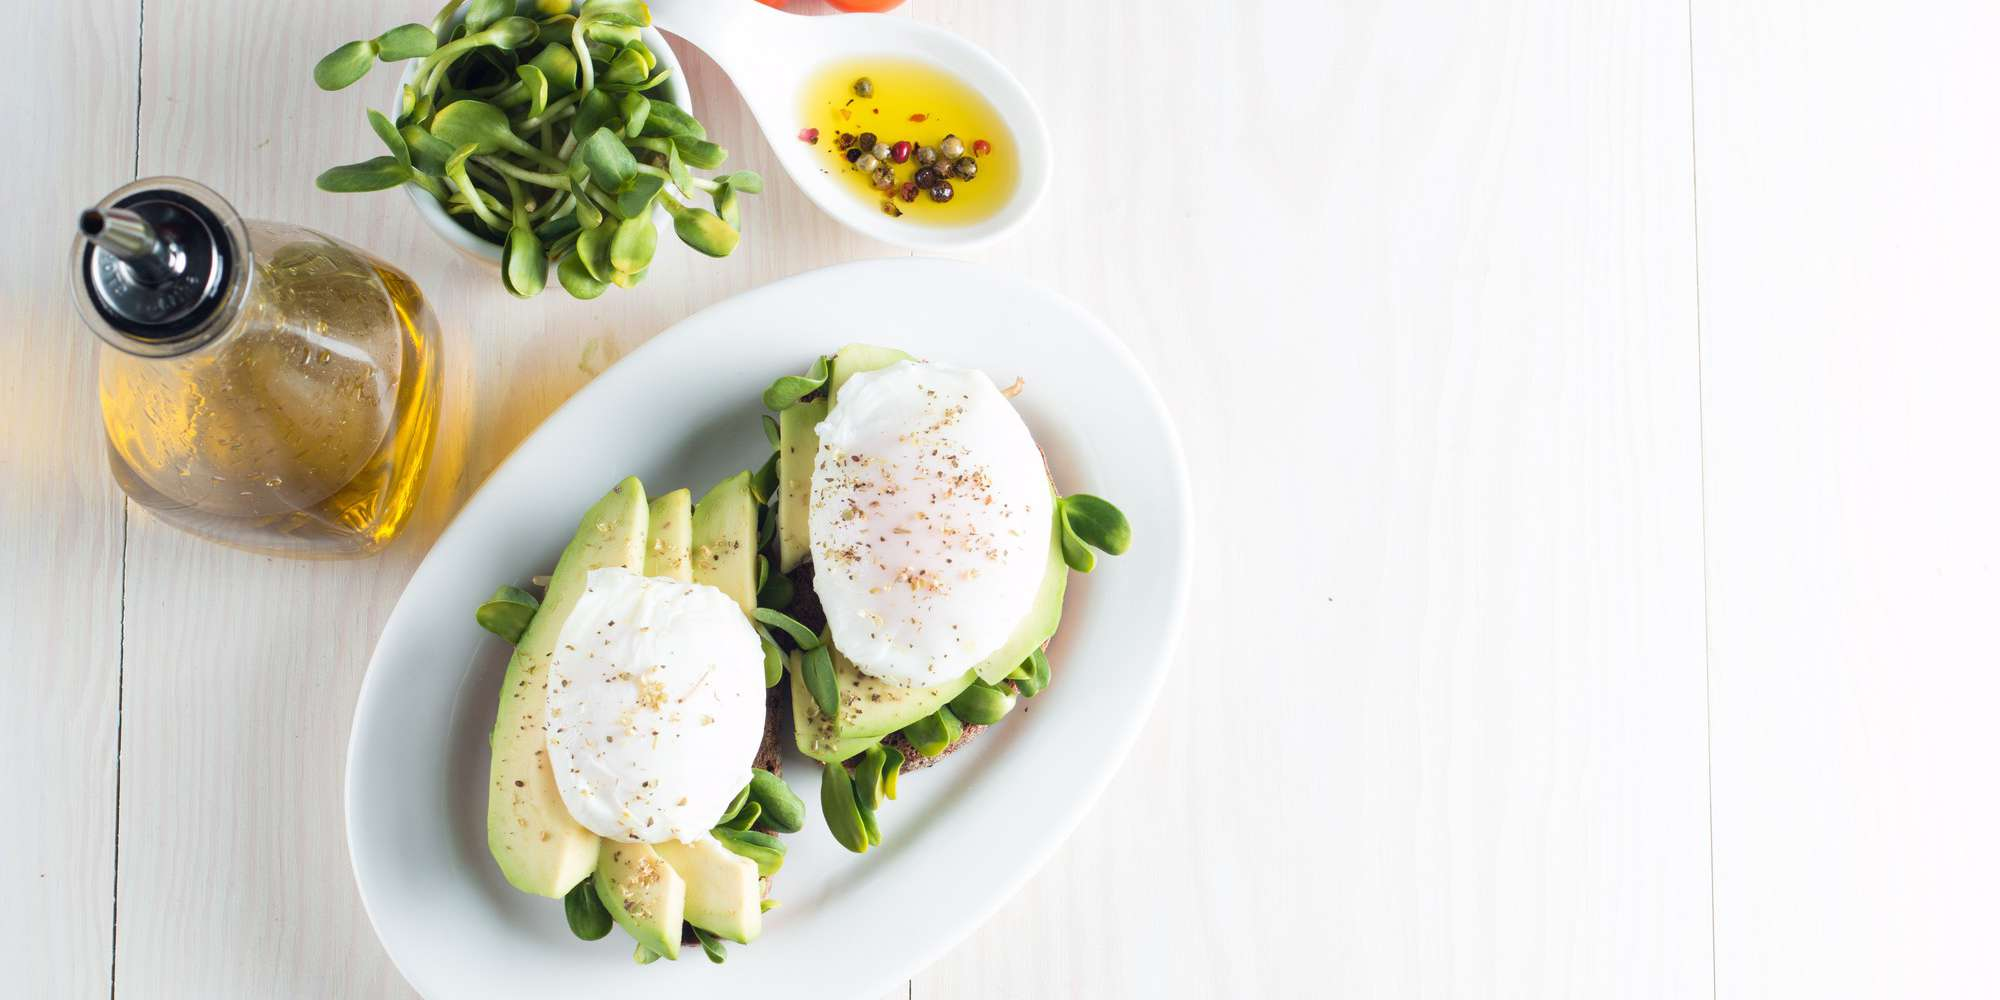 Avocado Toast with Eggs, Spinach and Tomatoes